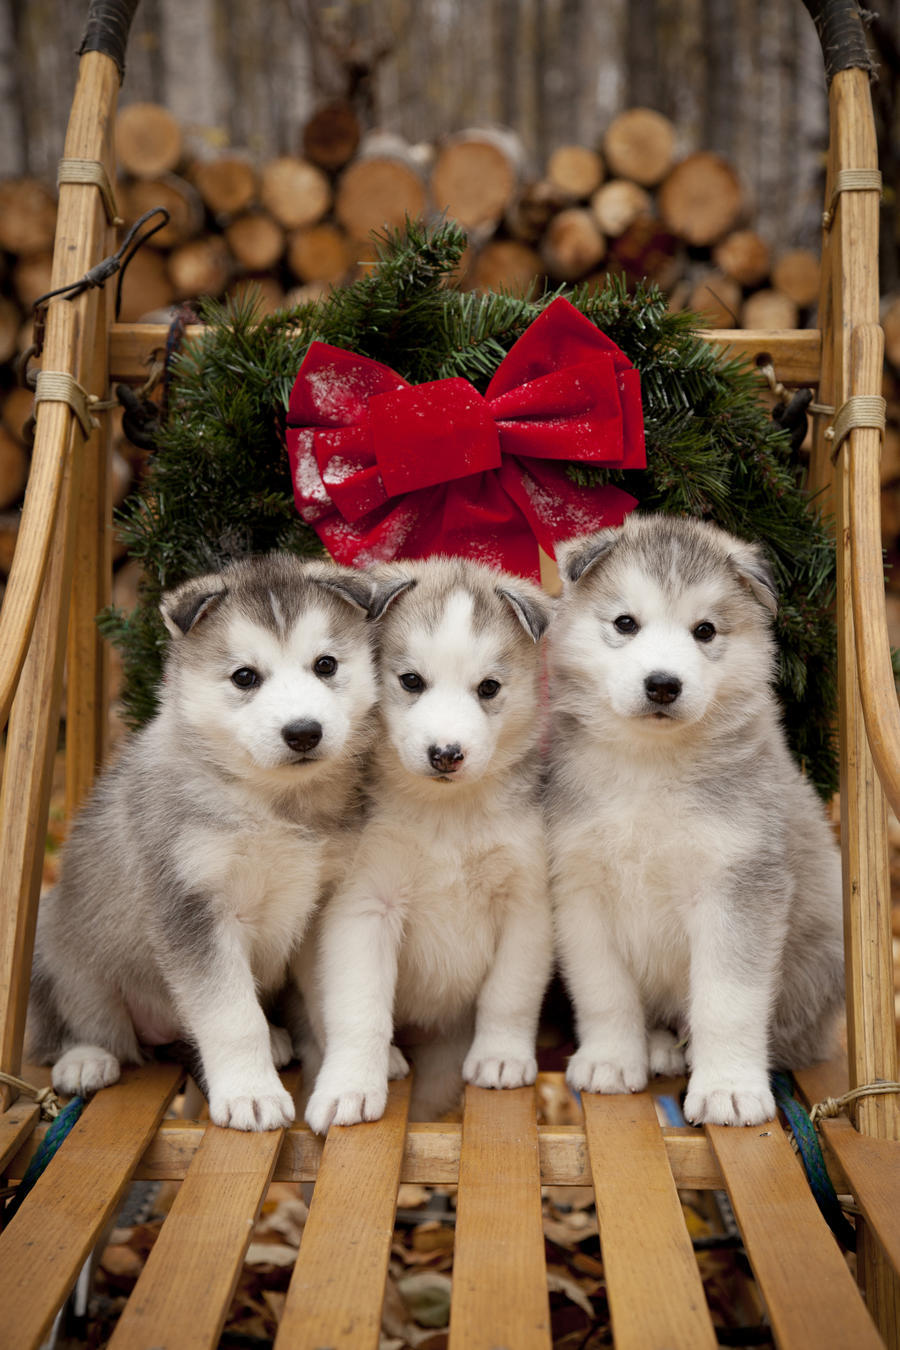 siberian husky puppies in traditional wooden dog sled with